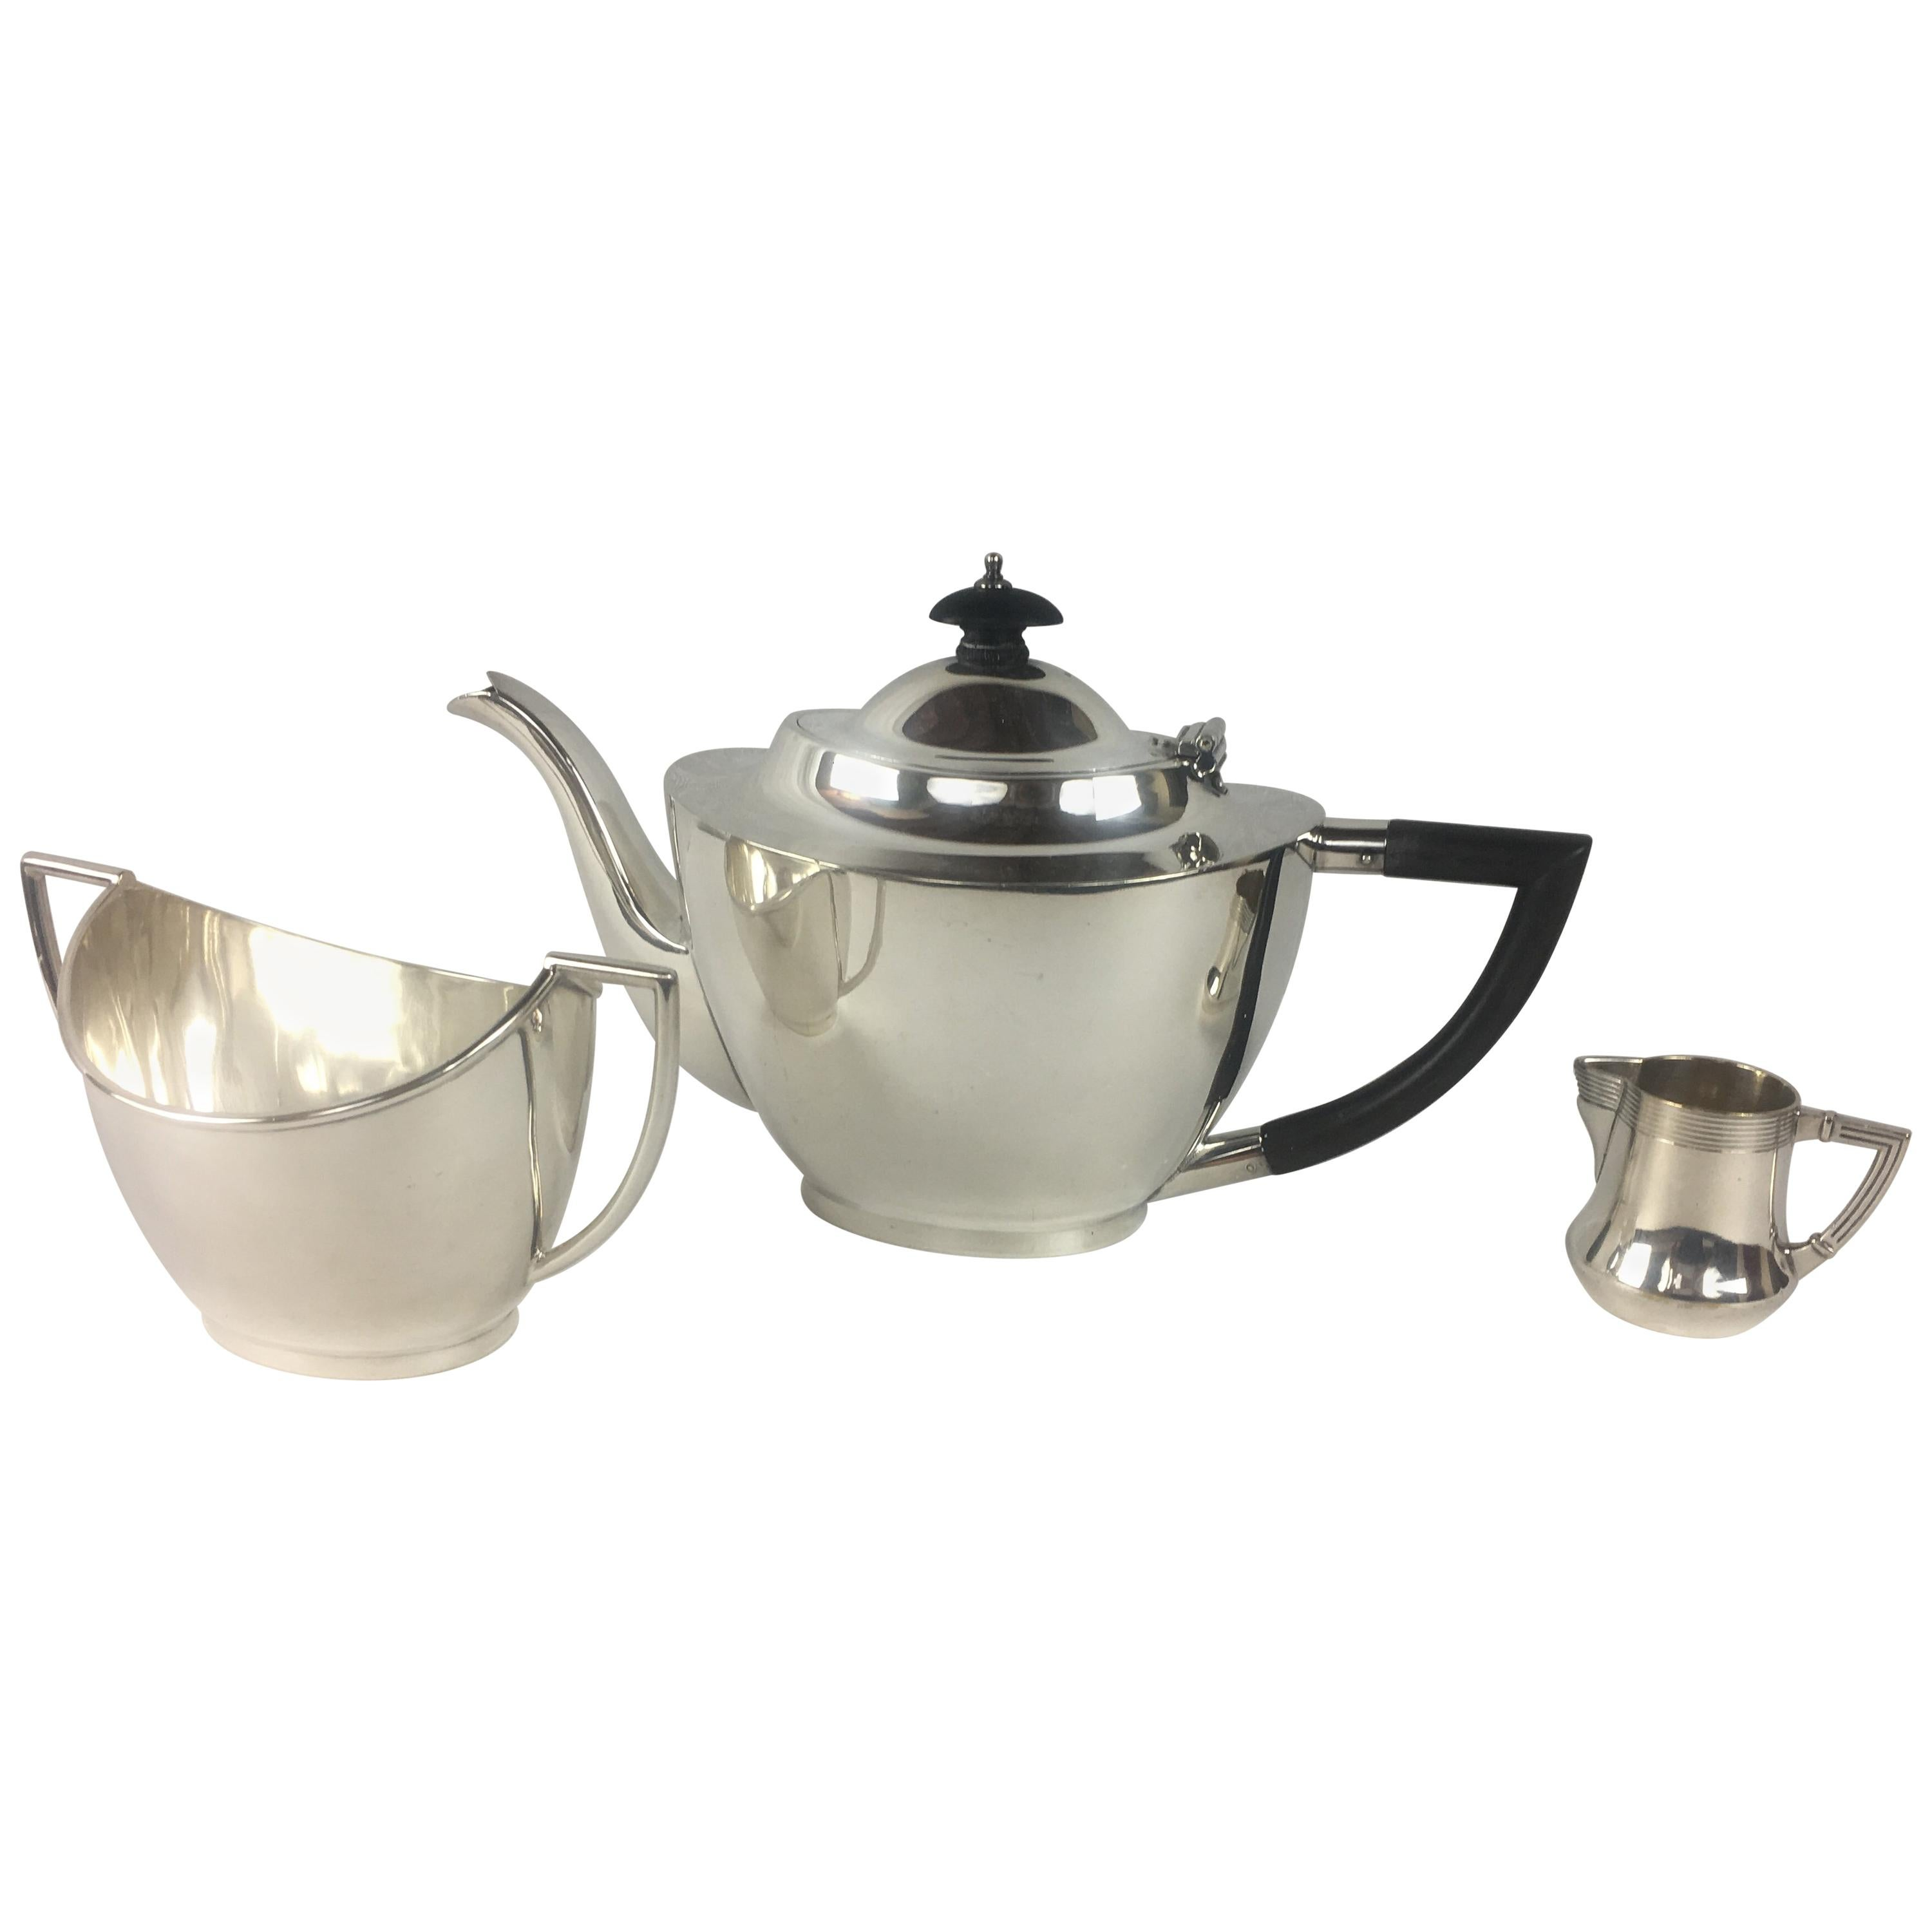 French Art Deco Silver Plated Tea Service, 3 Pieces